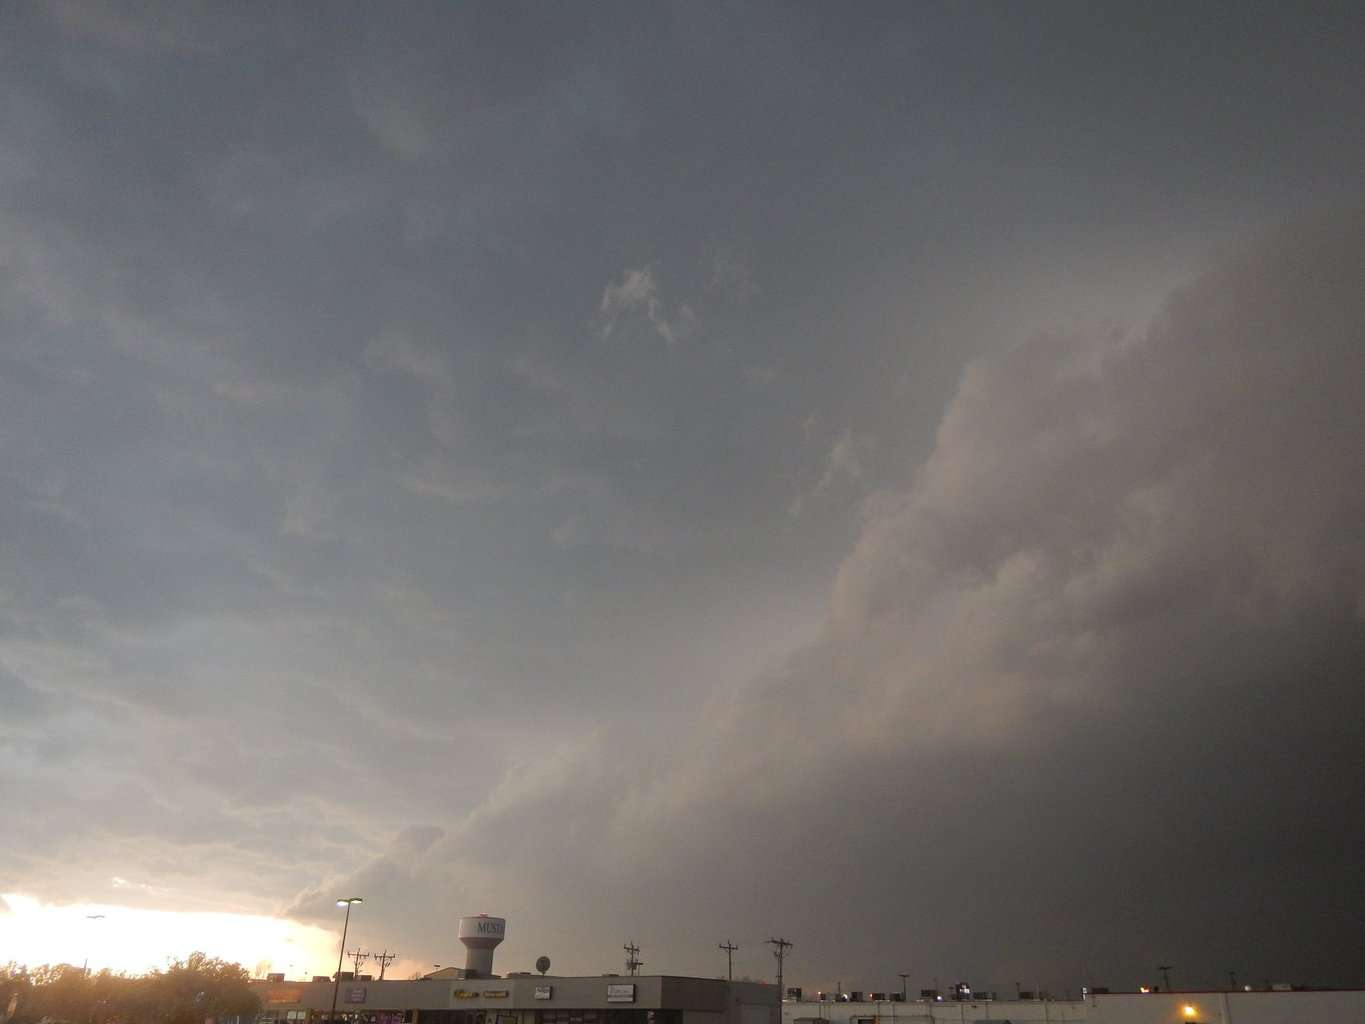 I AM READY FOR SOME MARCH STORMS like this one I captured in Mustang, Oklahoma of a tornadic supercell to the 6 miles WSW of Yukon, Oklahoma on March 25, 2015. The Storm Prediction Center reported it as an anti-cyclonic tornado observed north of SW 15th street and Gregory Road. This storm also produced ping pong size hail and later would produce 73 mph winds 3 miles south of Mustang, Oklahoma.